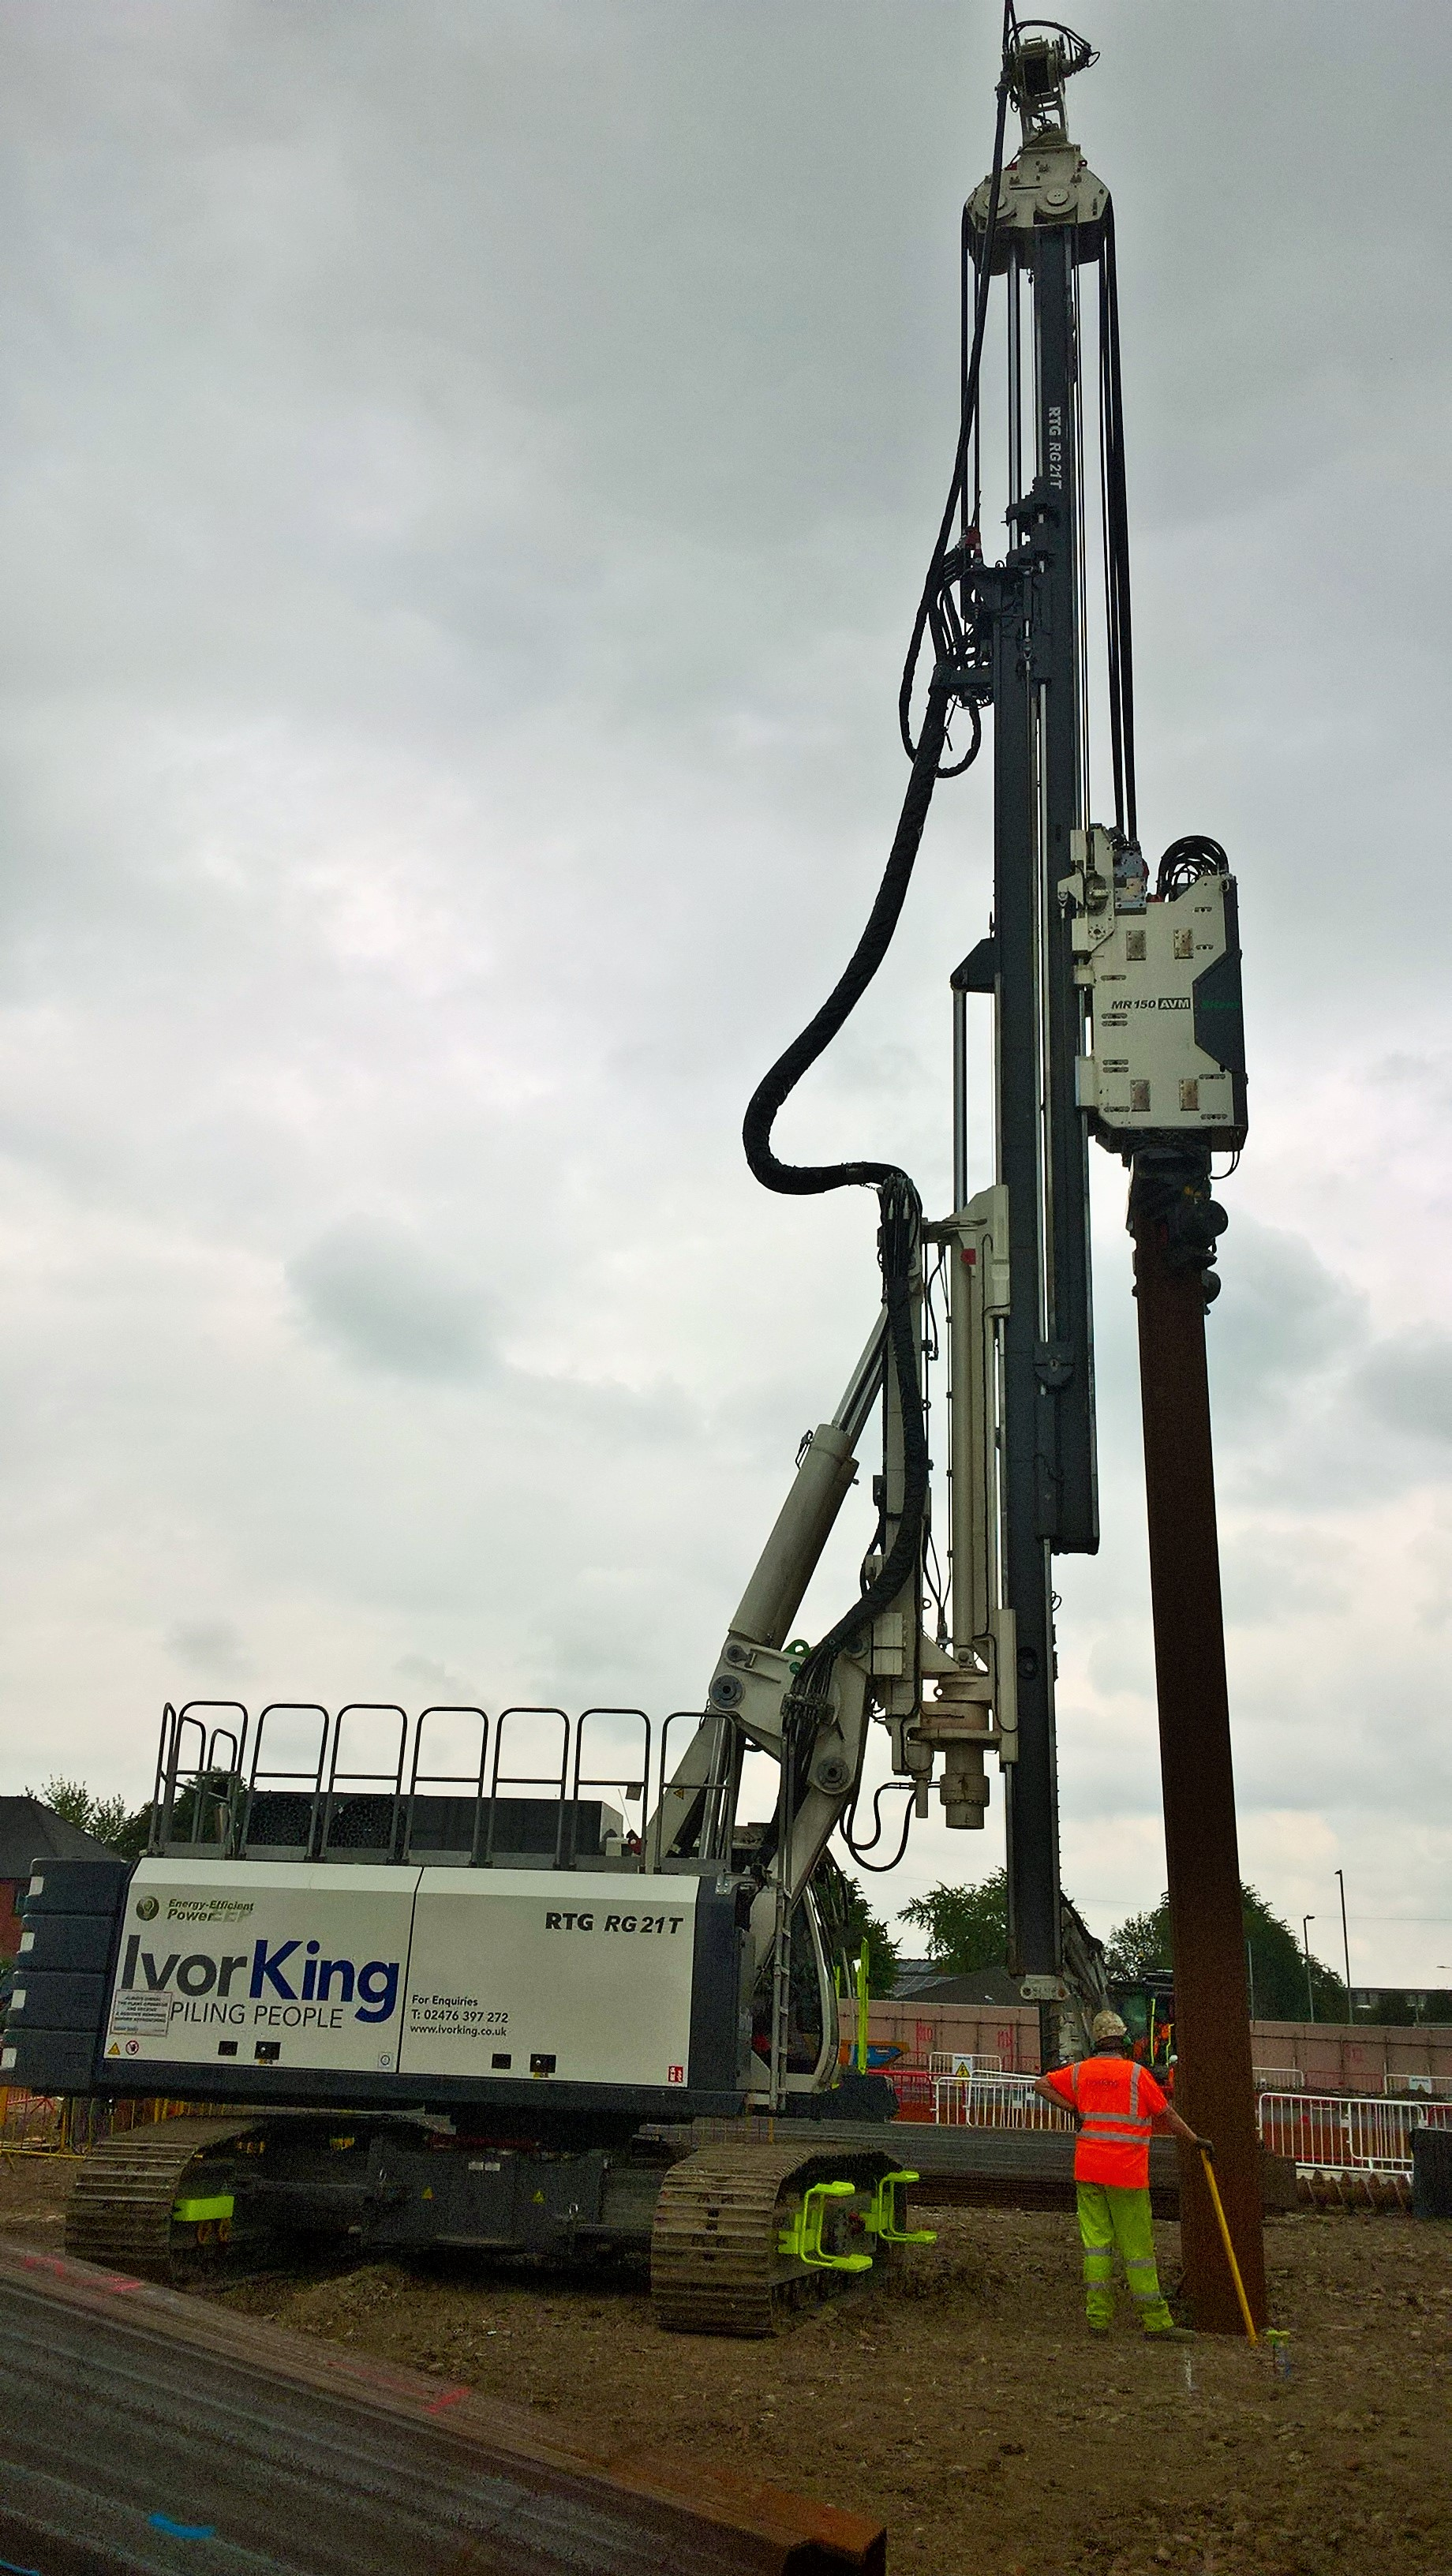 Ivor King chooses RTG from AGD for the 2nd time